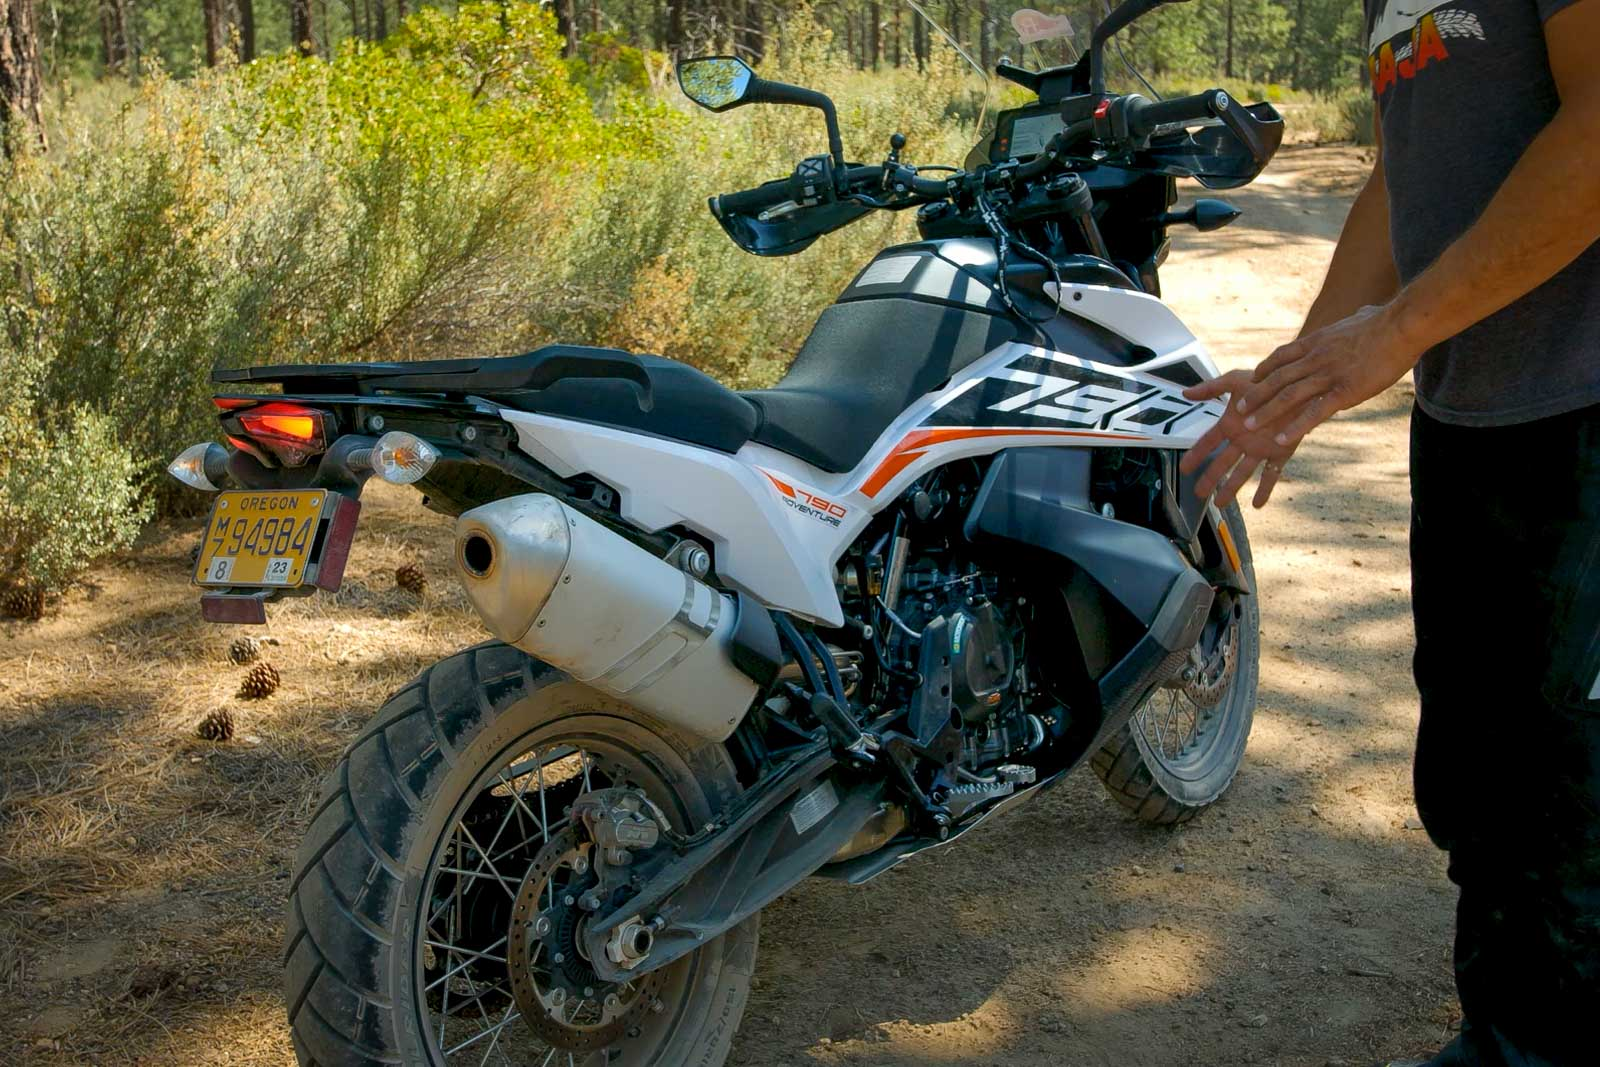 Eric pointing out the wheelbase on the KTM 790 Adventure